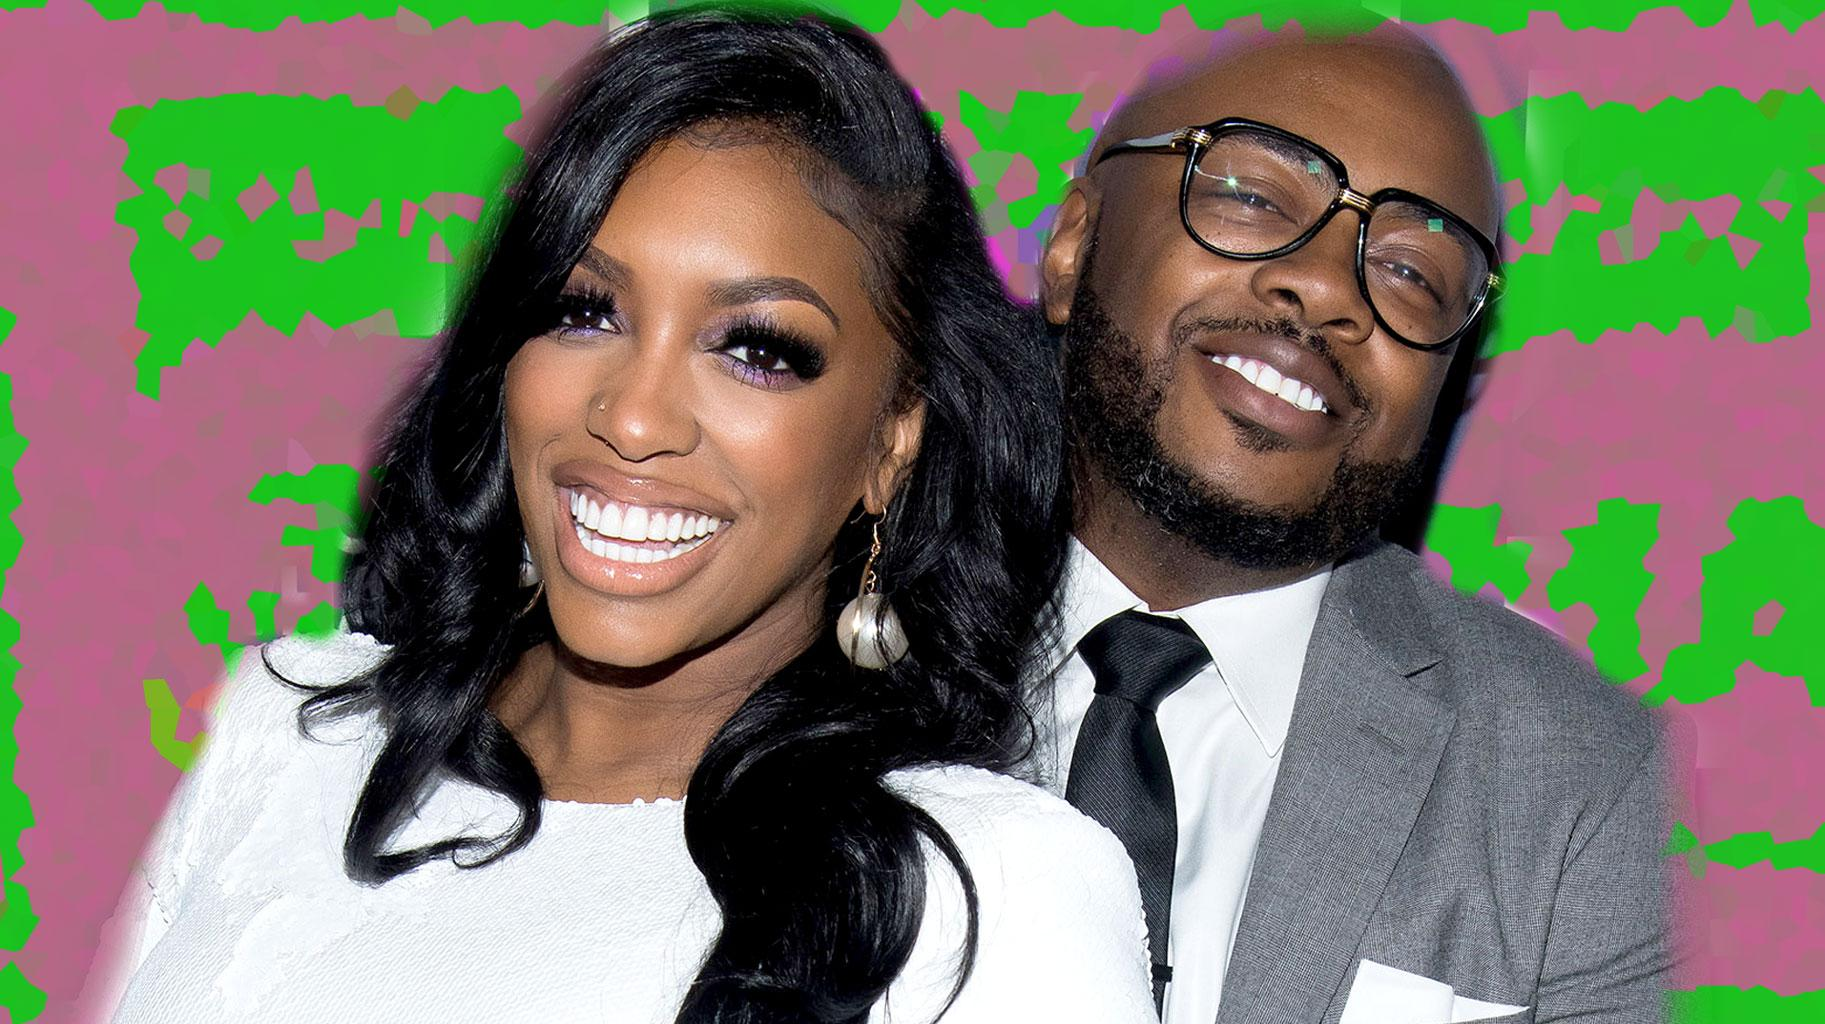 Porsha Williams Makes Fans Happy Wearing Her Engagement Ring Again - She Shows Off Her Curves In A Nude Skin-Tight Dress